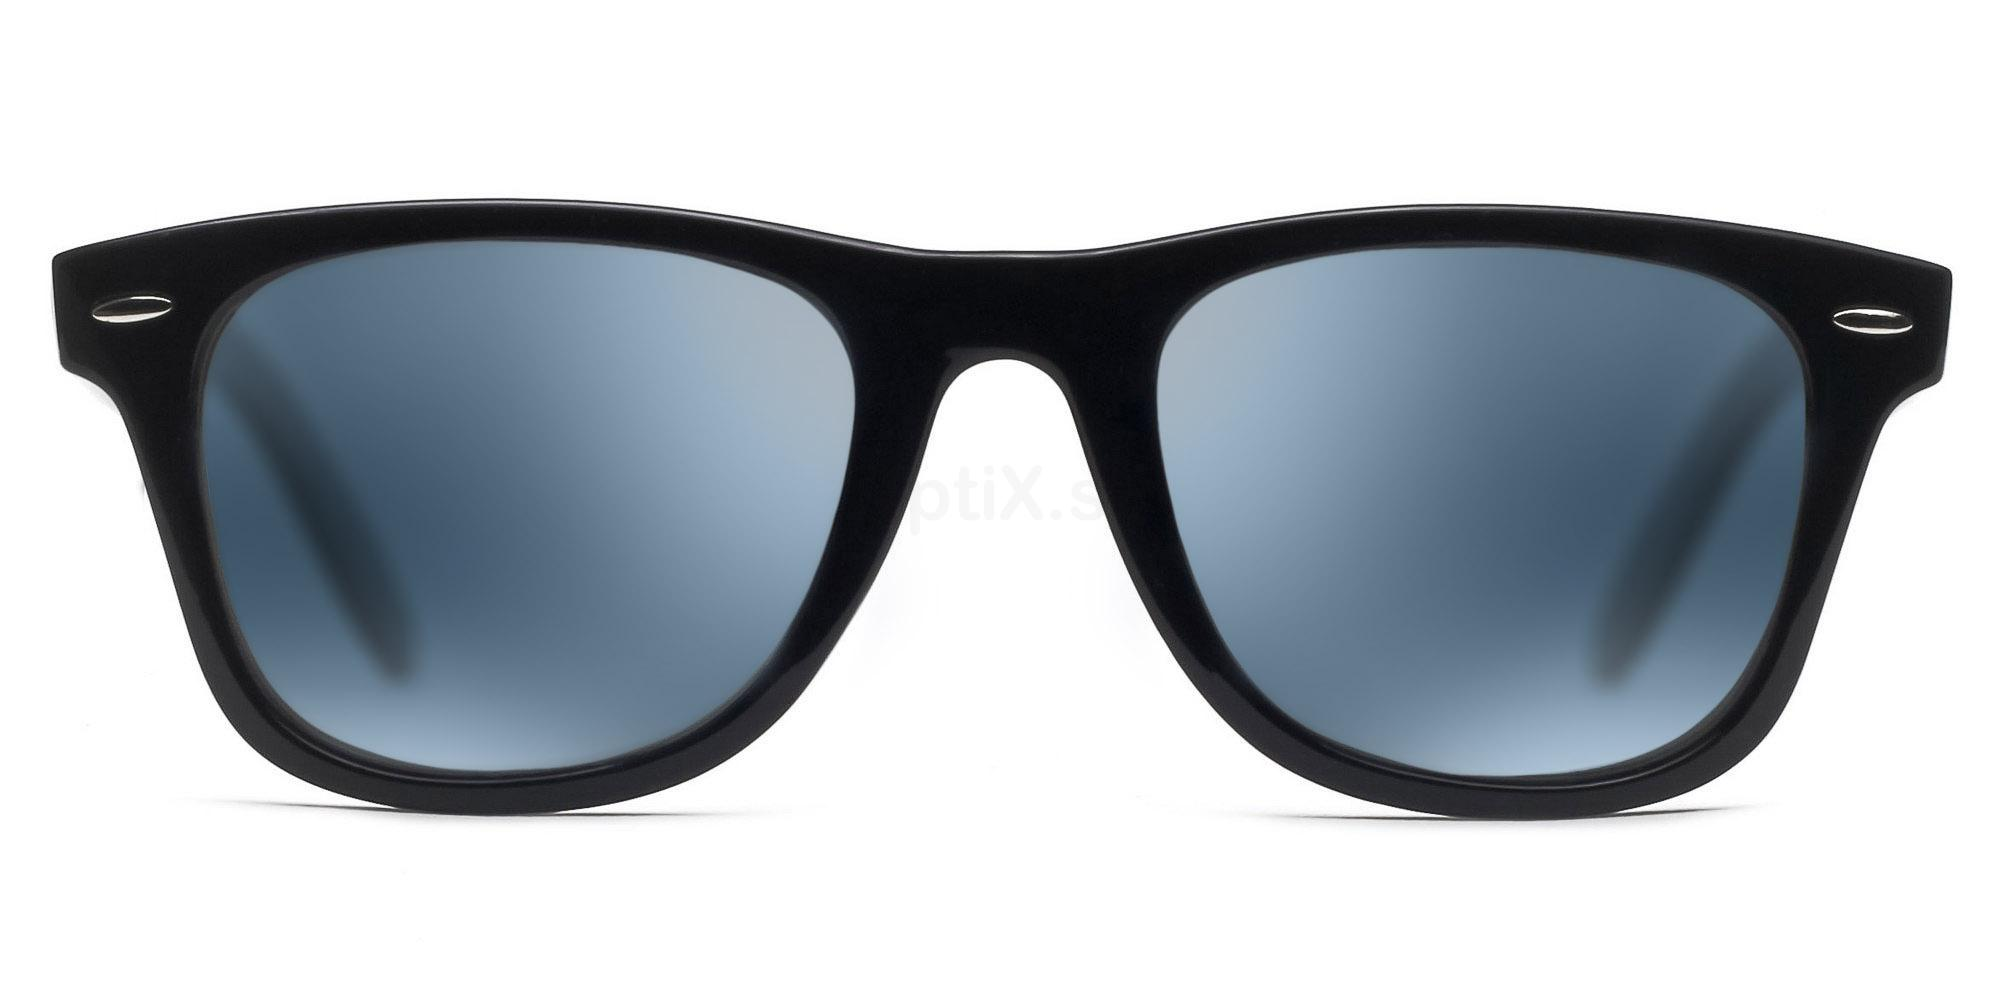 C01 Polarized Grey with Silver Mirror P2429 - Black (Mirrored Polarized) Sunglasses, Savannah